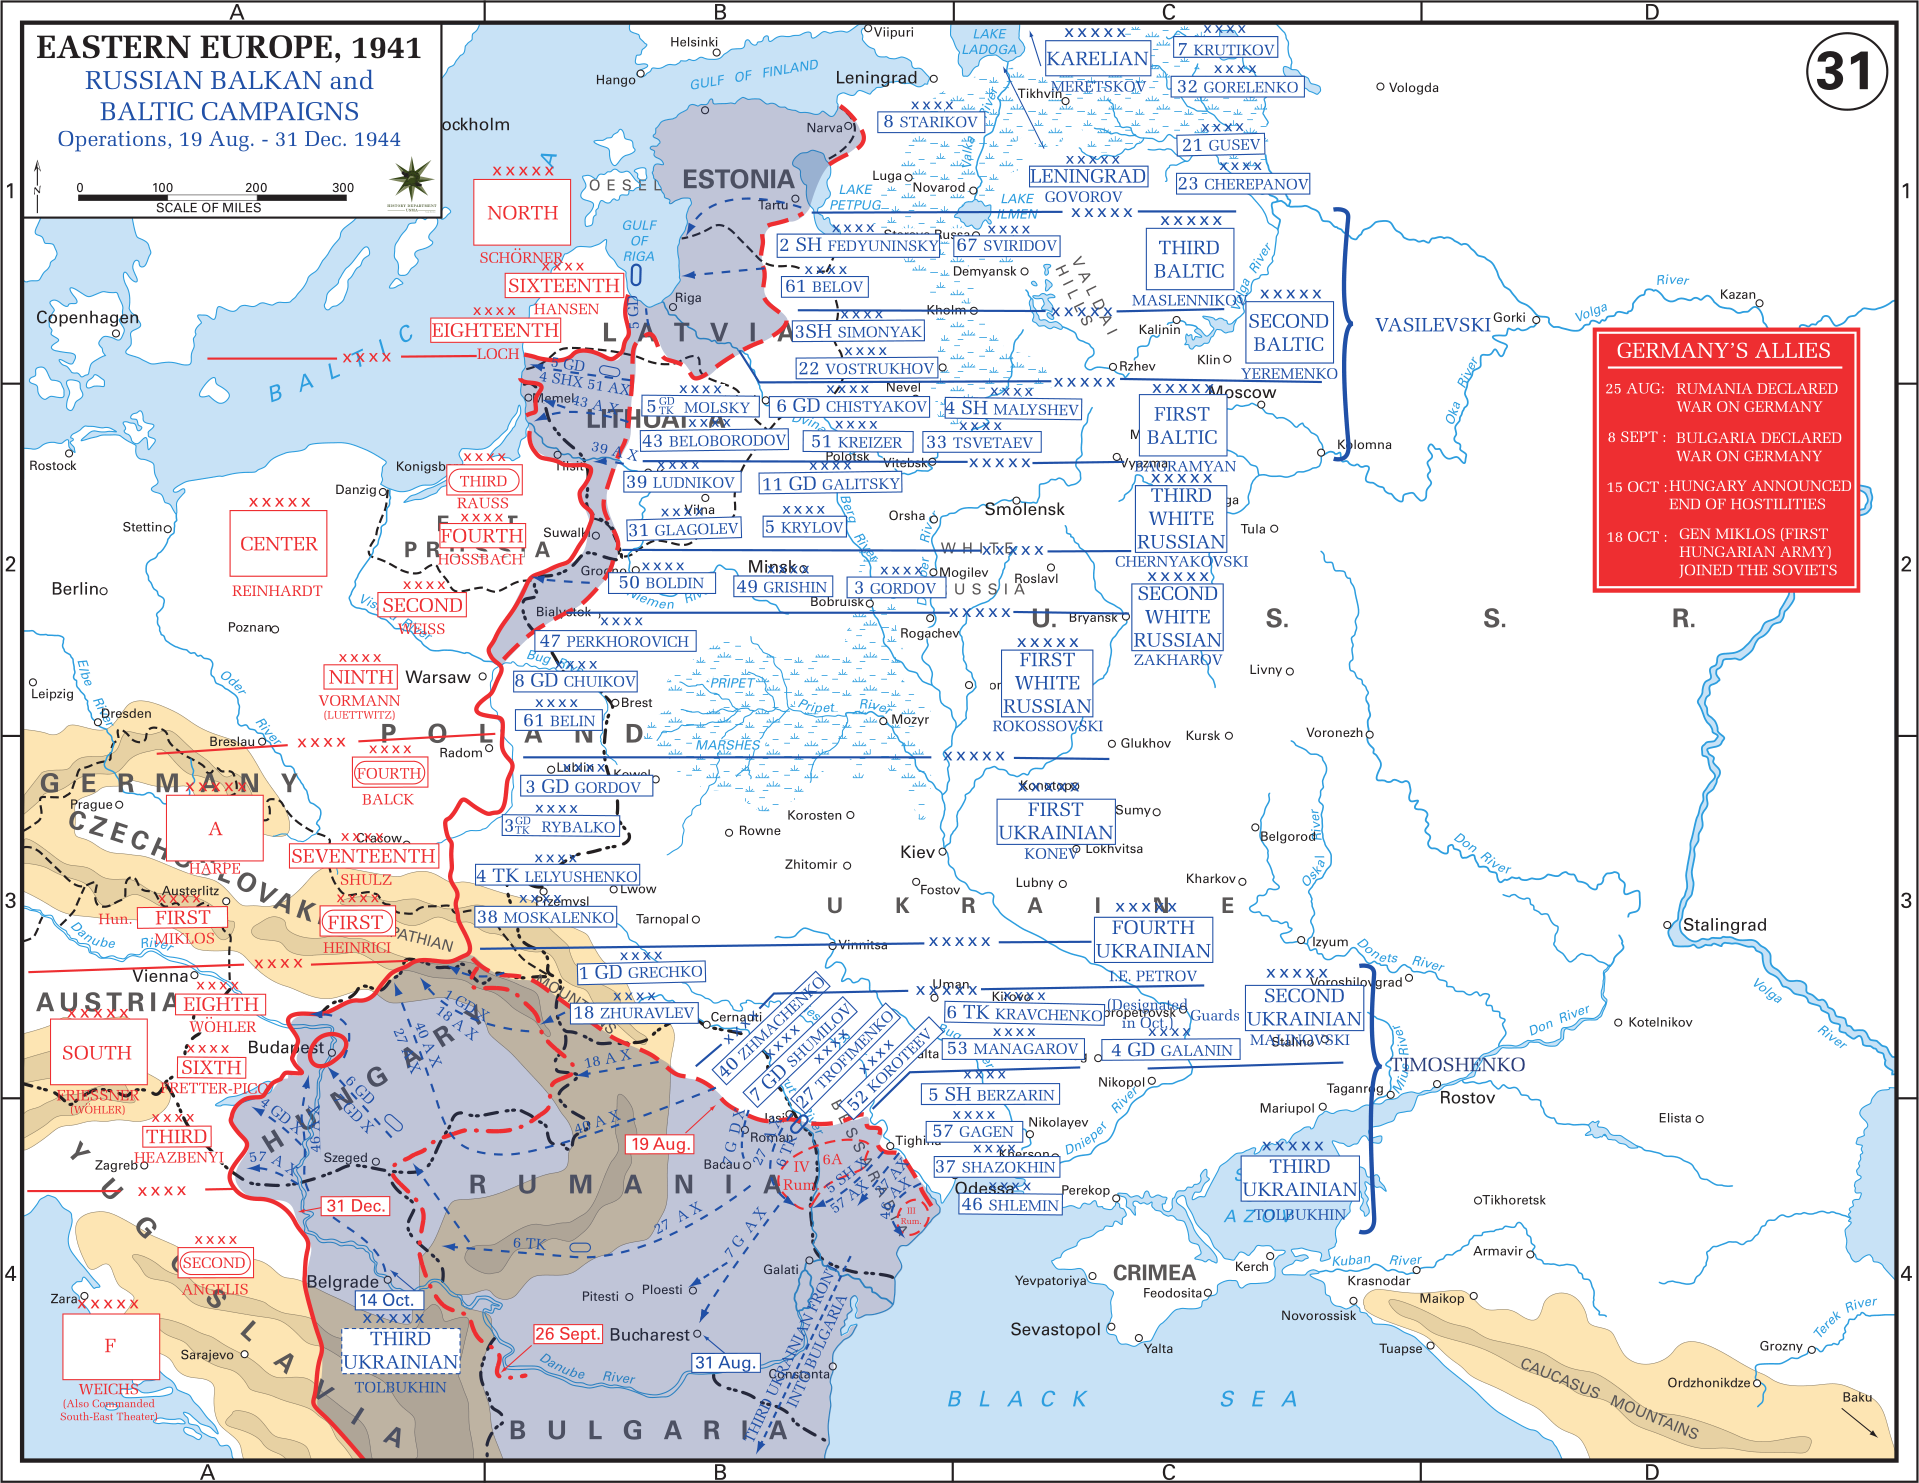 Eastern front maps of world war ii inflab medium russian balkan and baltic campaigns 19 august 31 december 1944 gumiabroncs Image collections